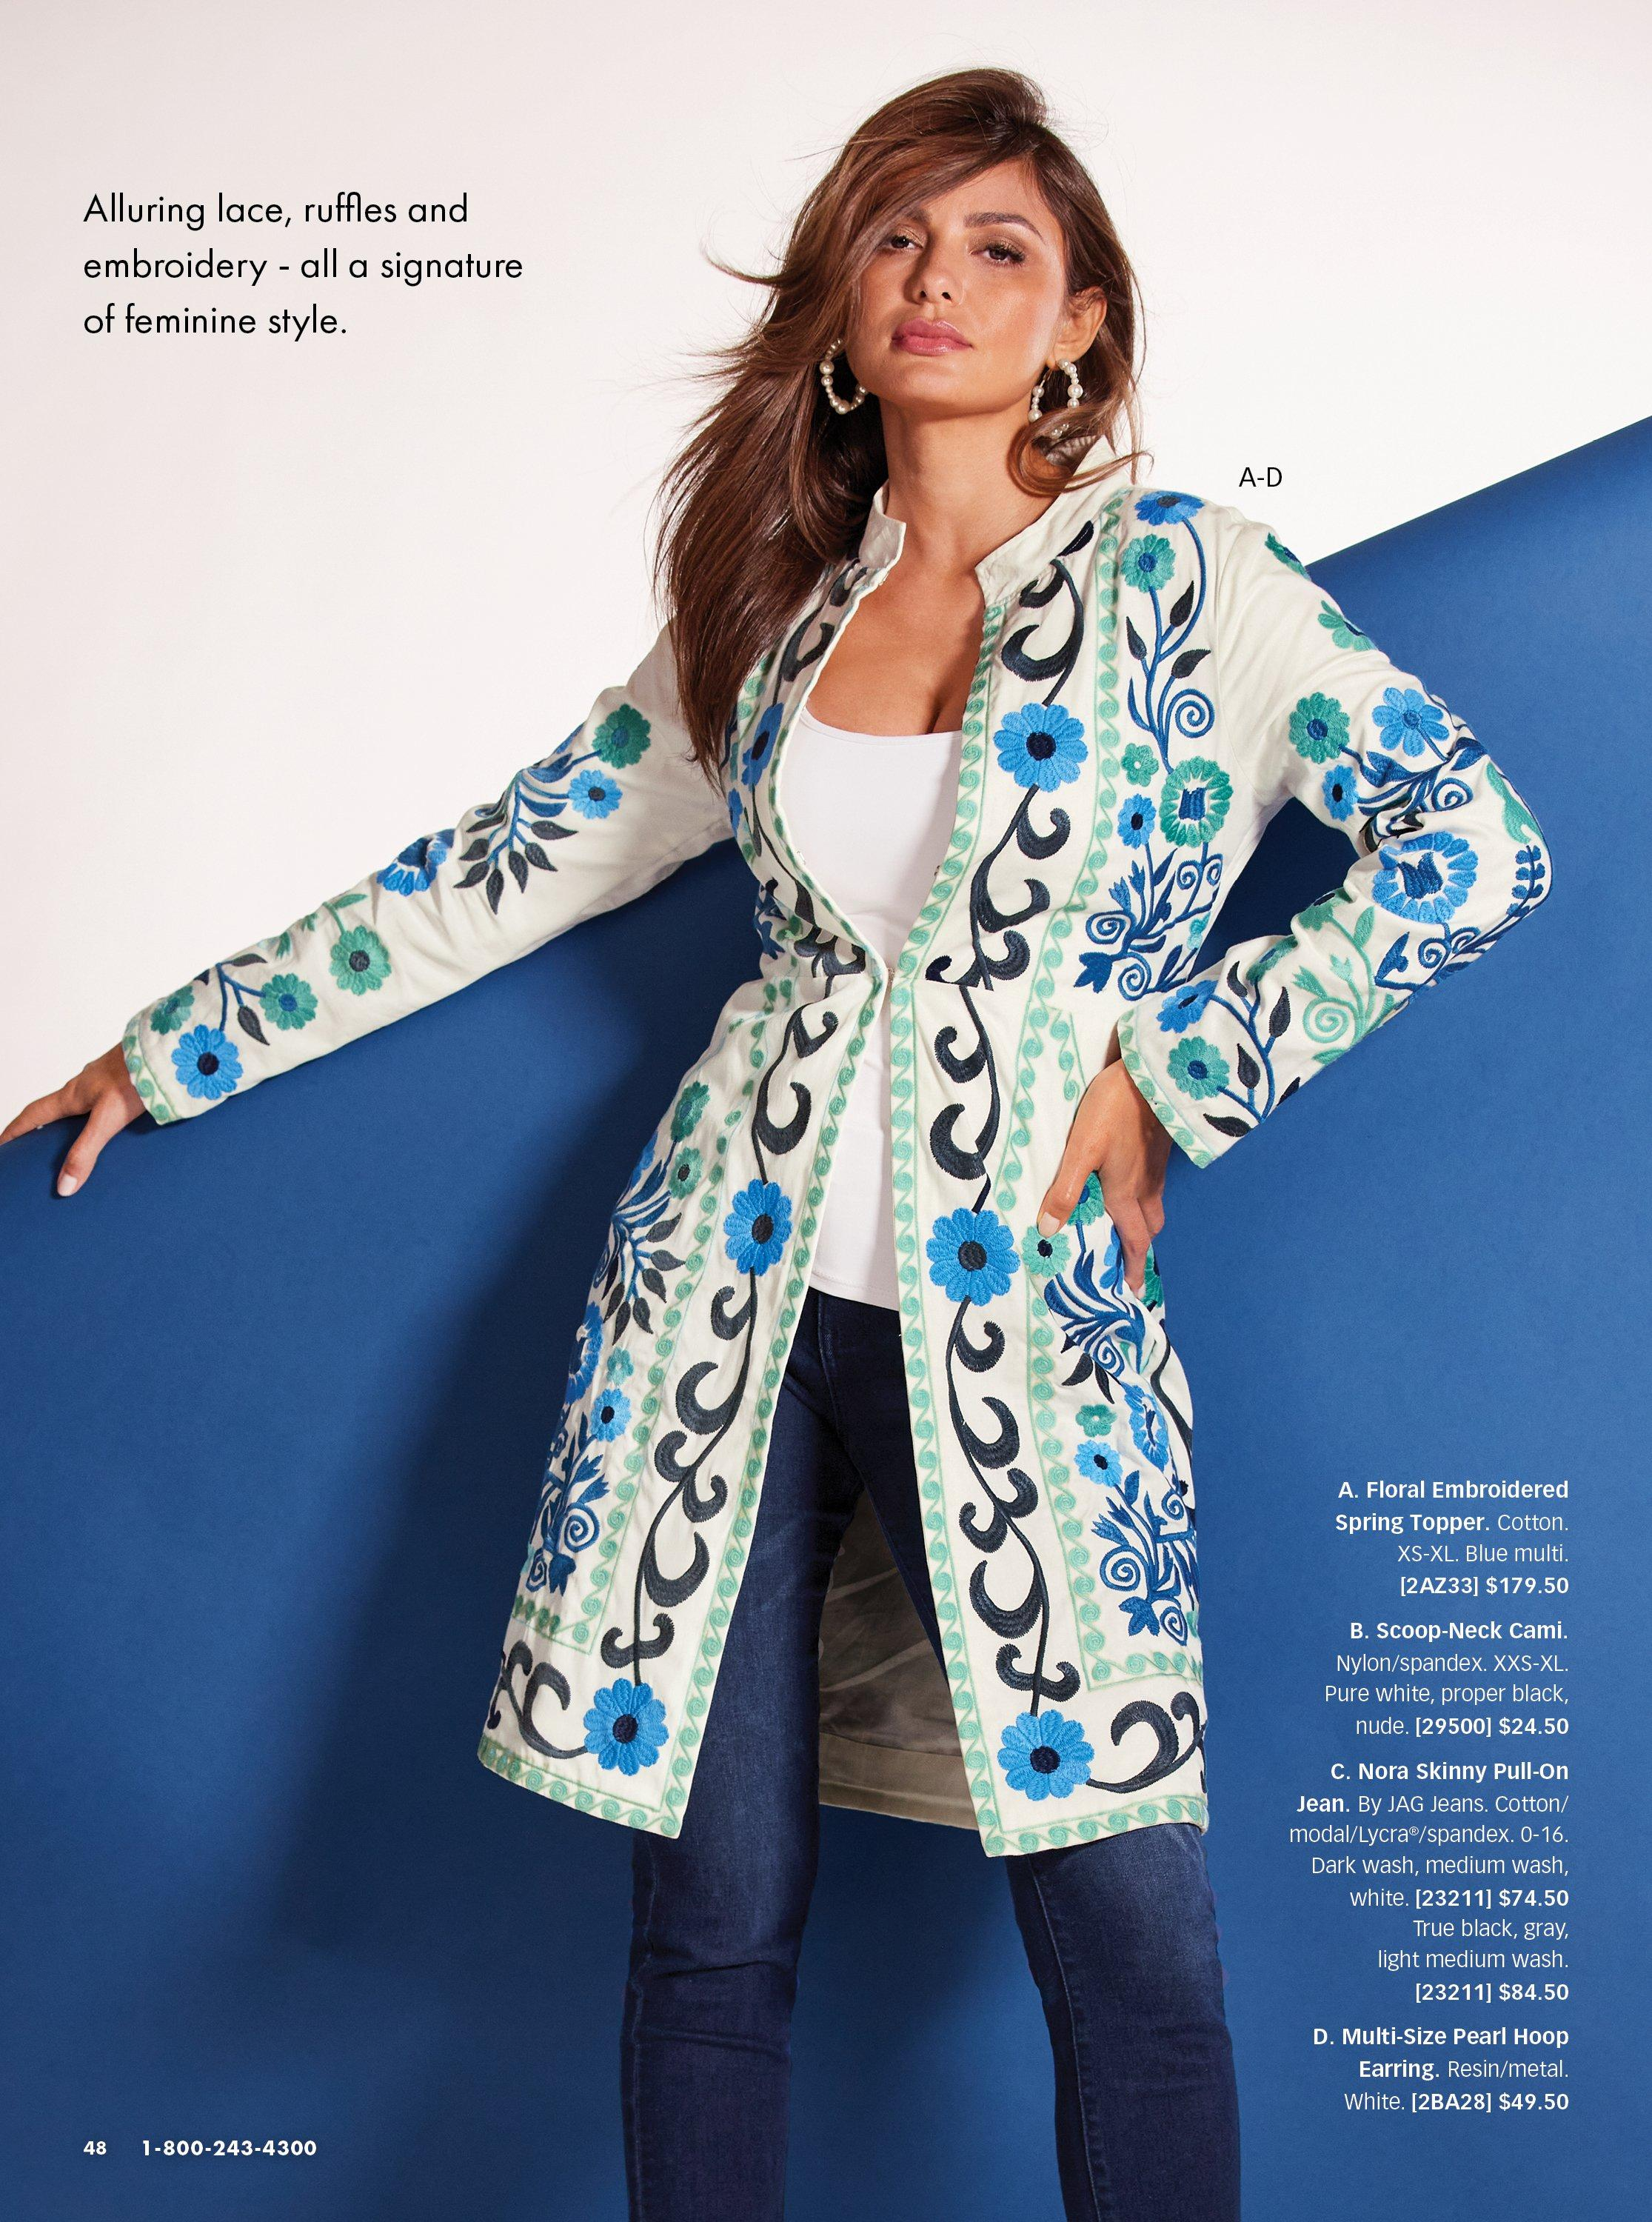 model wearing a white and blue floral embroidered topper jacket, white tank top, jeans, and pearl embellished hoop earrings.